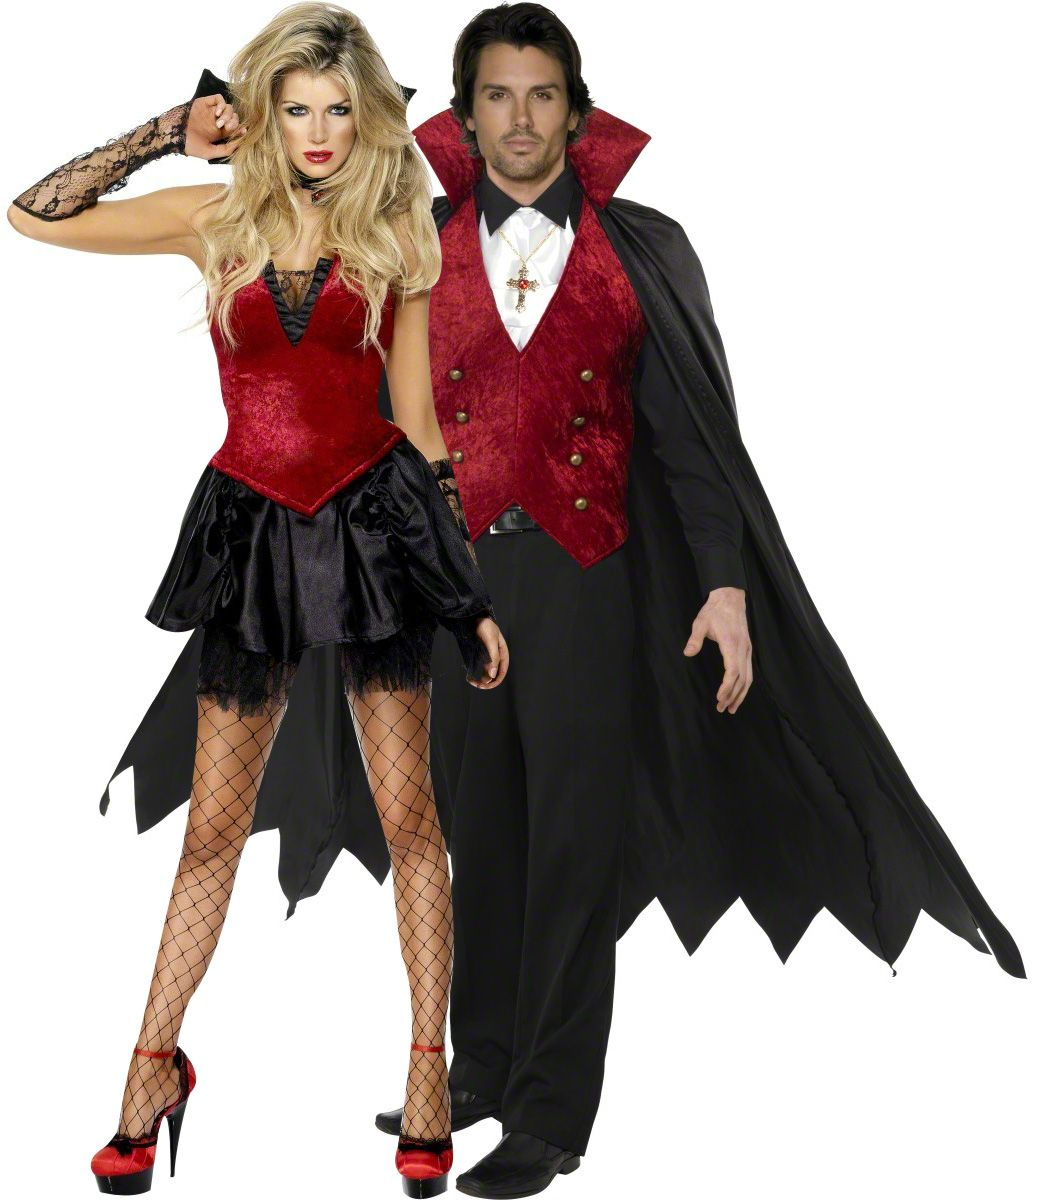 Witch Couple Costumes / Scary Sorcerer and Sorceress Halloween ...